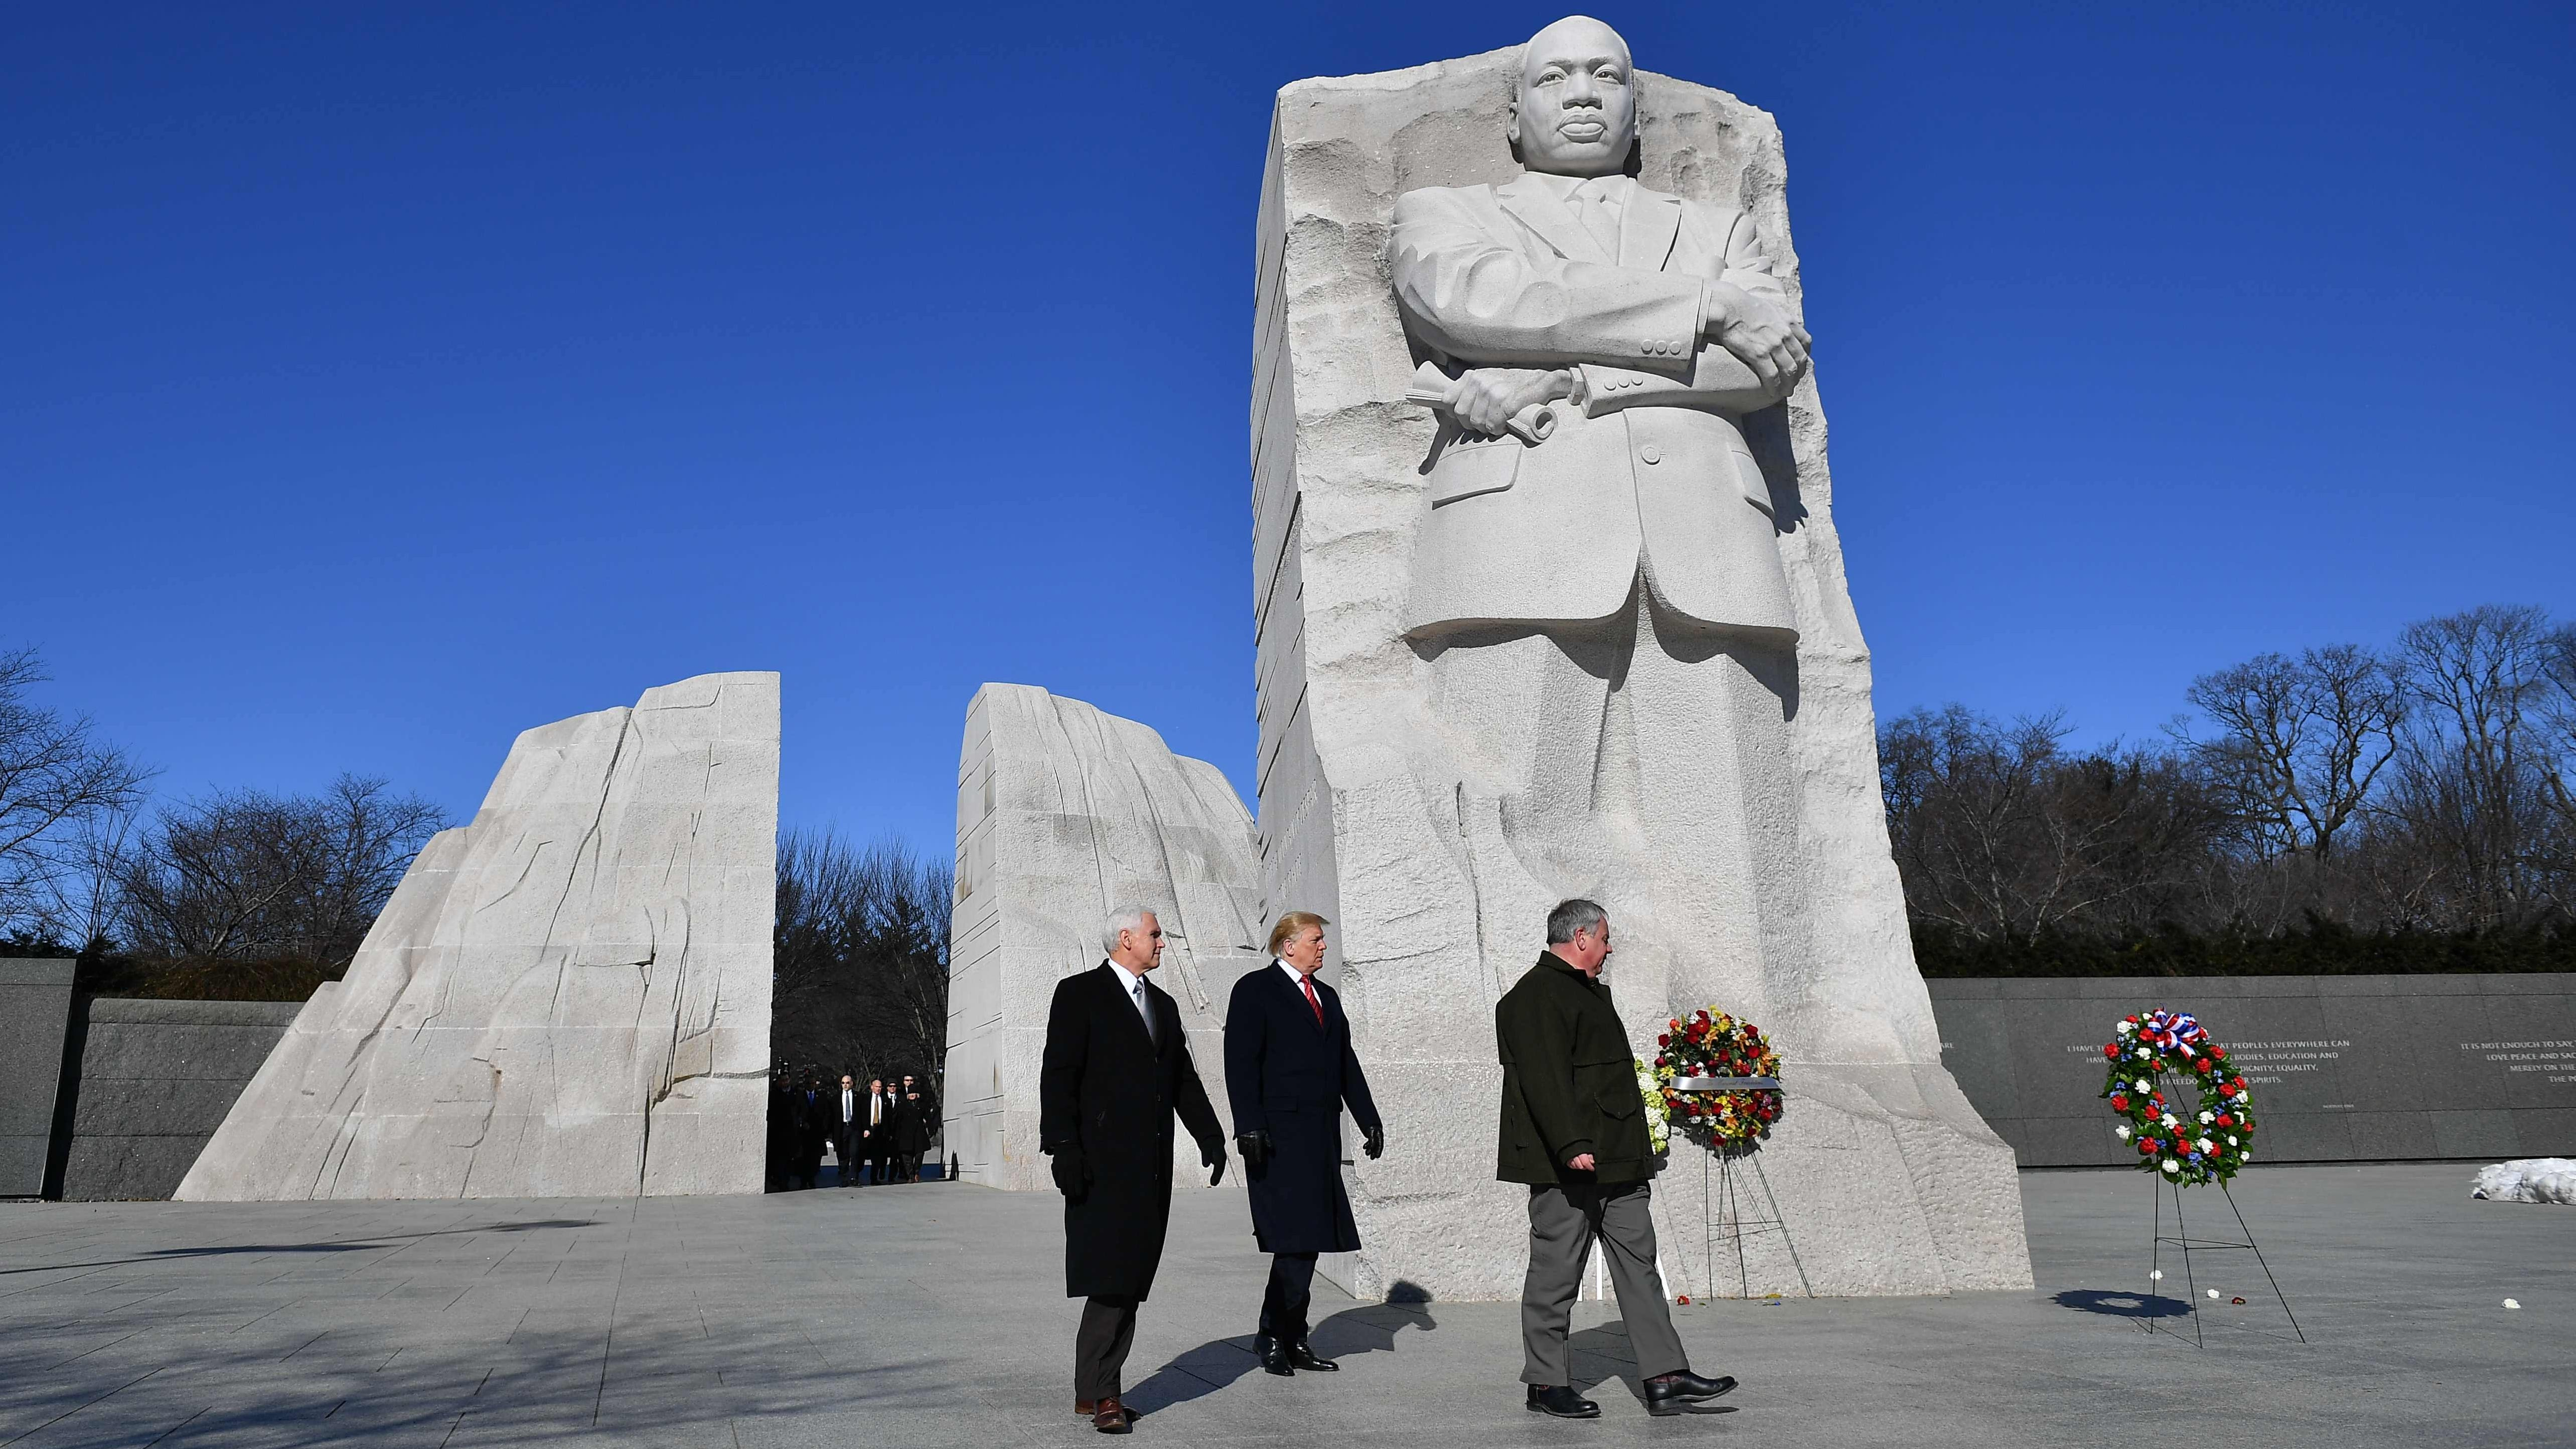 President Donald Trump Vice President Mike Pence visit the Martin Luther King Jr. Memorial in Washington on Jan. 21, 2019.